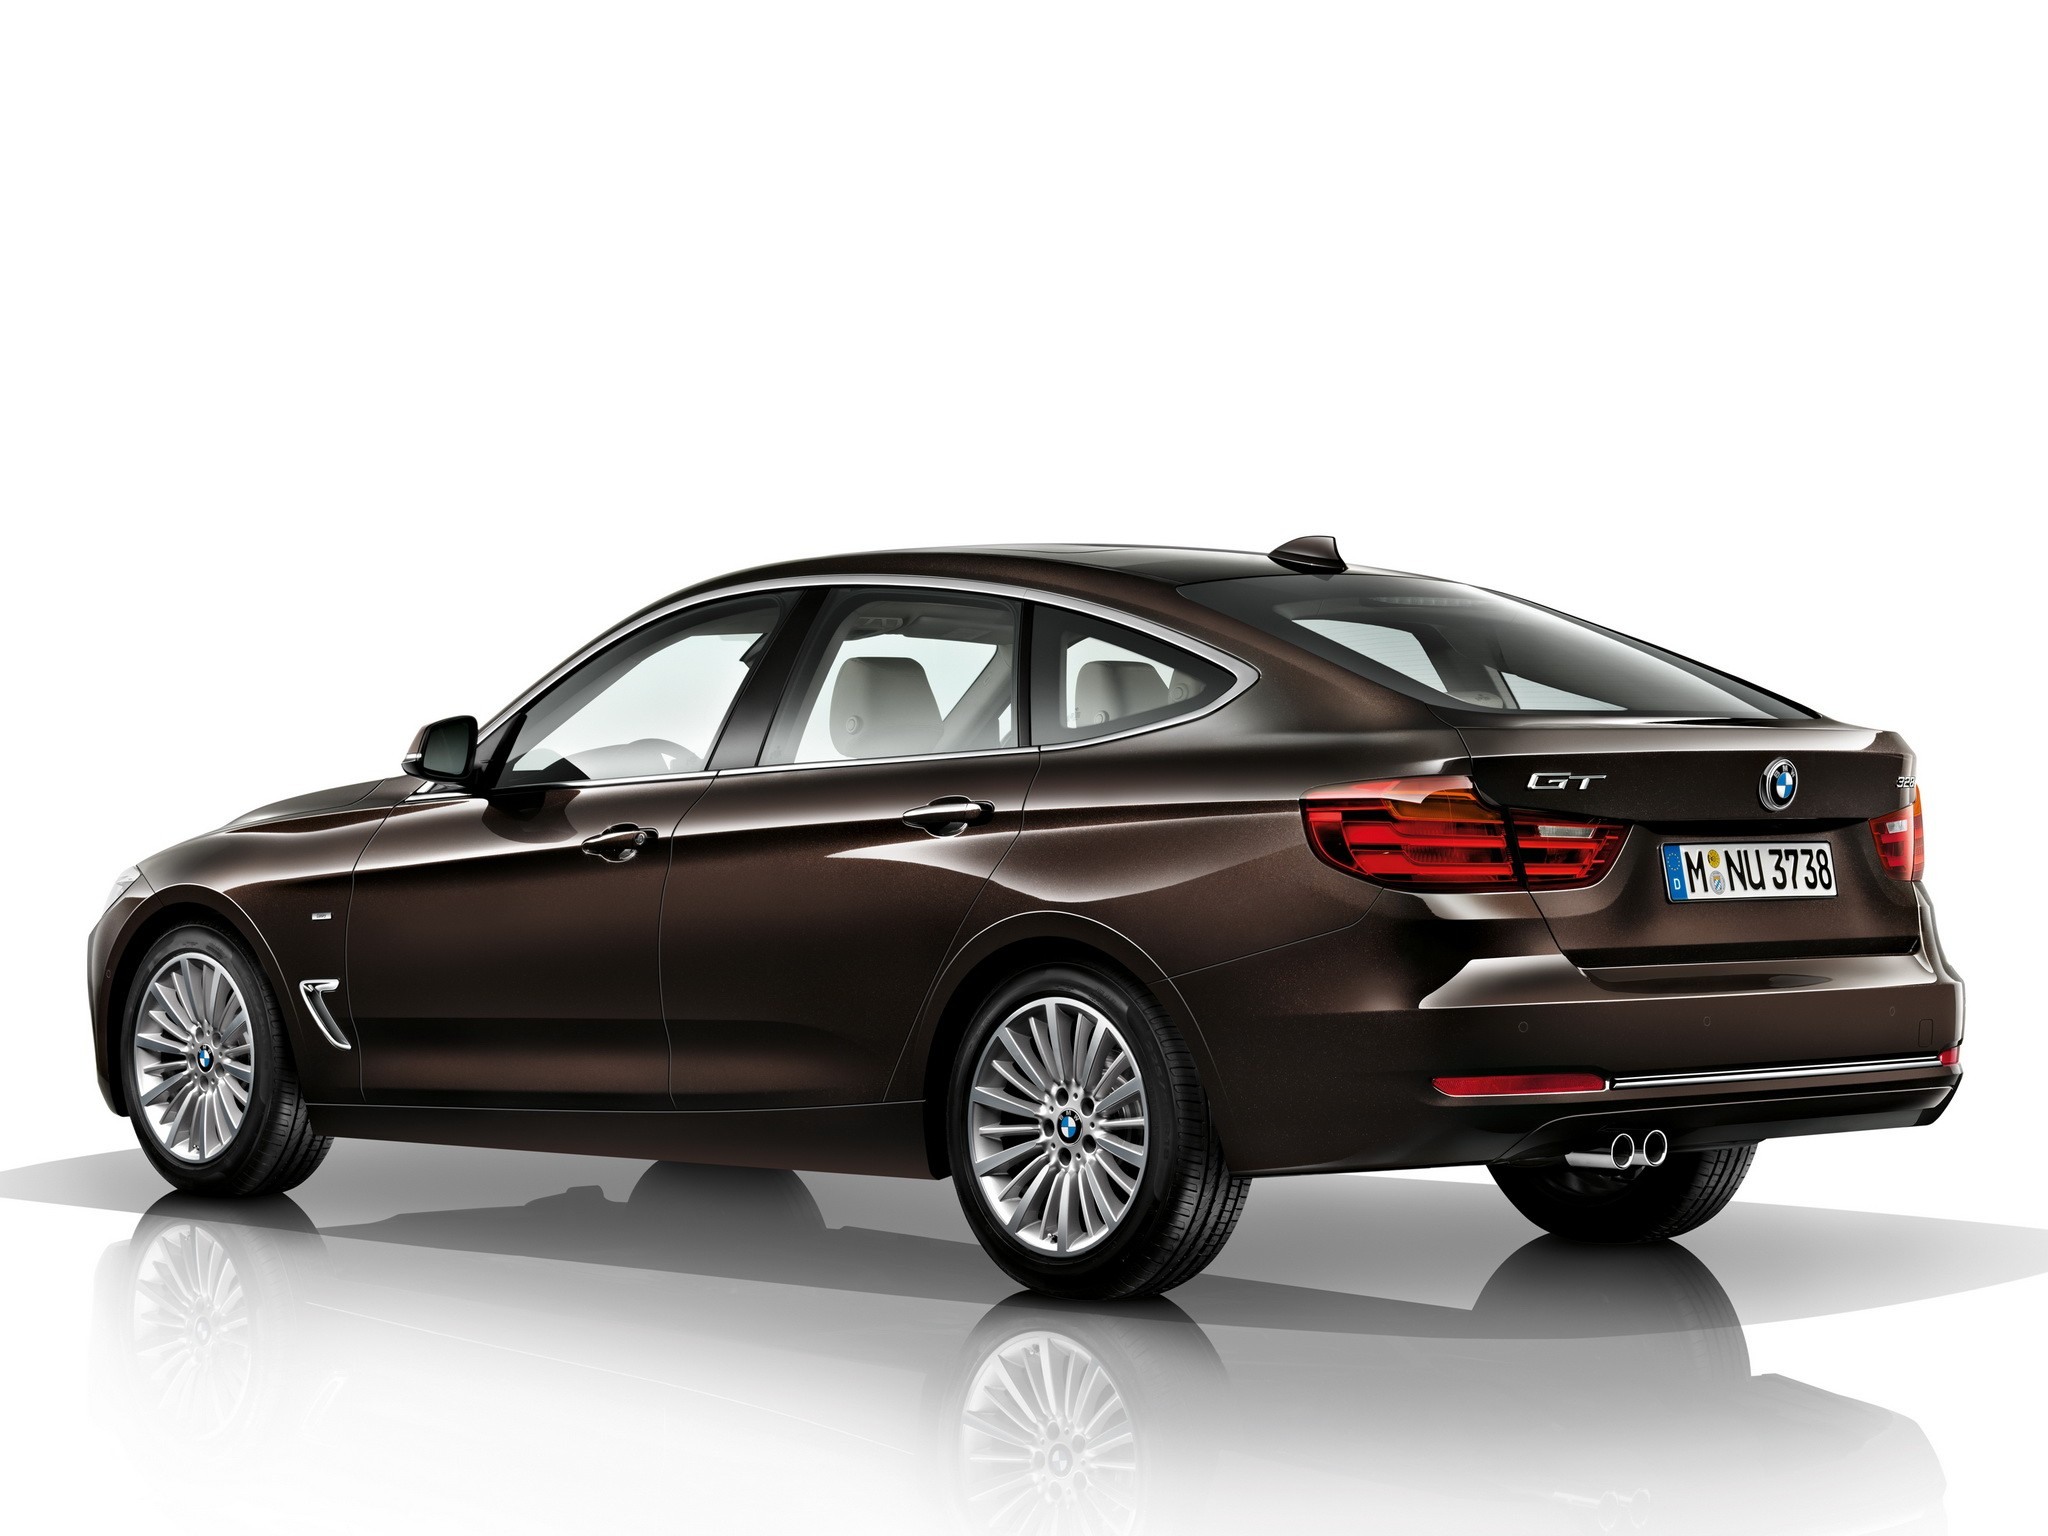 bmw 3 series gran turismo f34 specs 2013 2014 2015. Black Bedroom Furniture Sets. Home Design Ideas